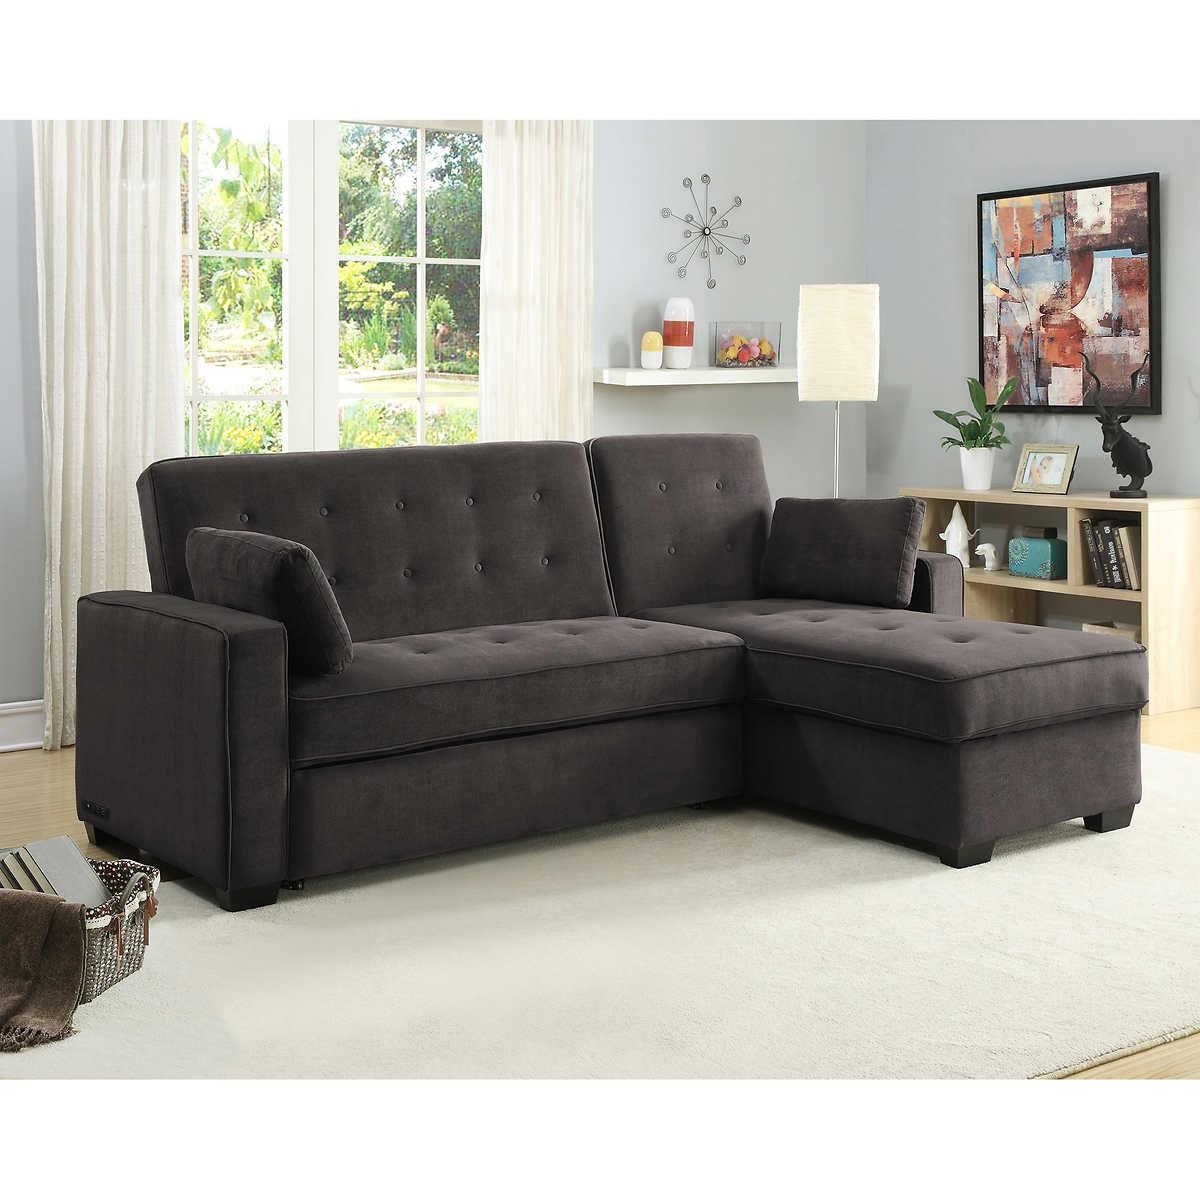 Berkline reclining sofas choosing a reclining sofa brand for Berkline chaise recliner